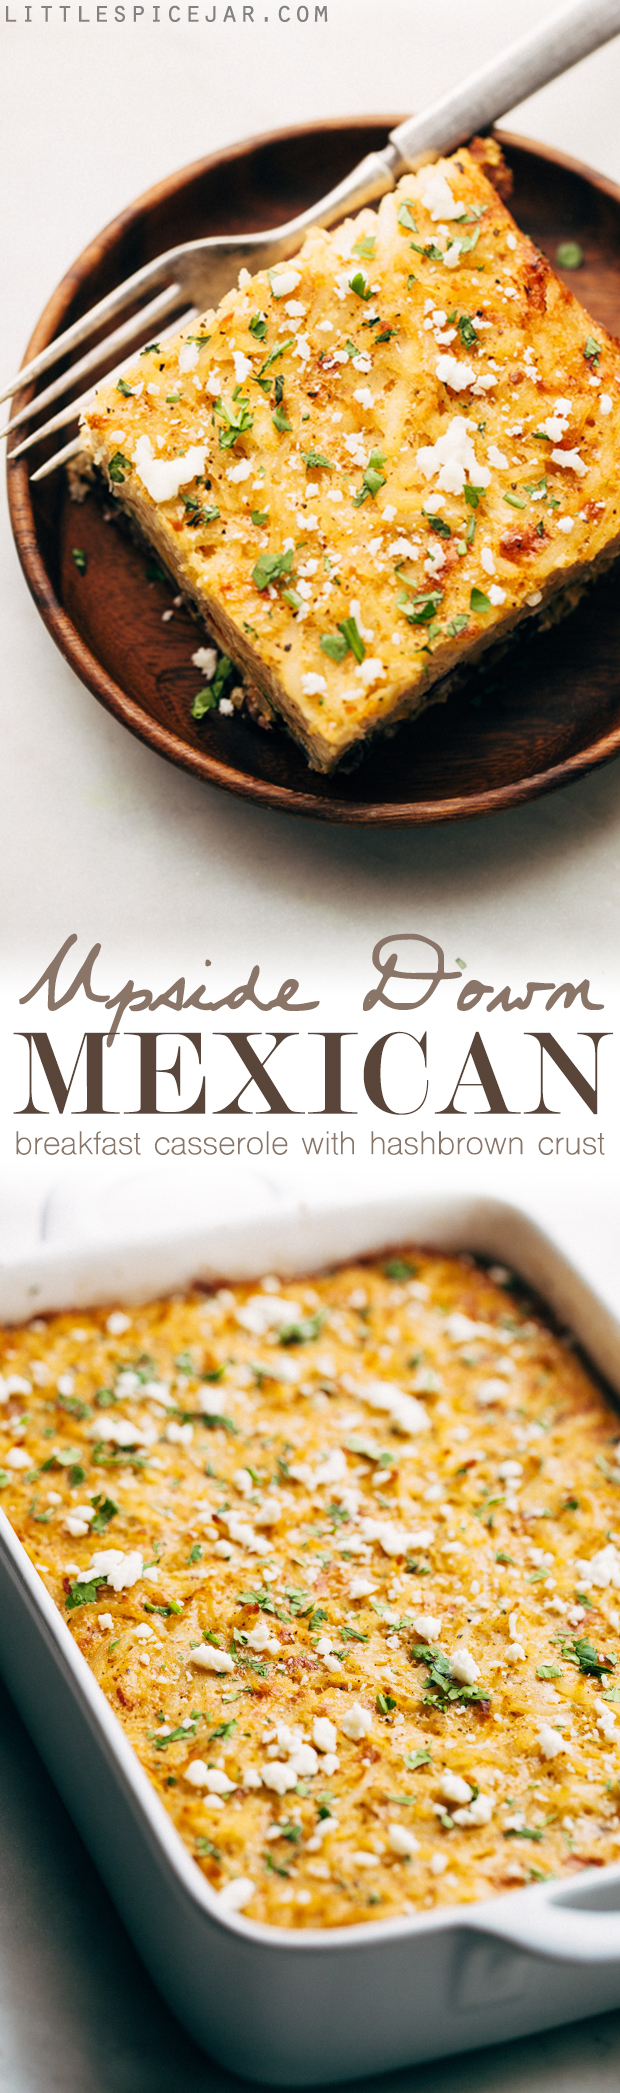 Mexican Breakfast Casserole with Hash Brown Crust - an easy casserole that feeds a crowd! You can even stuff it inside warm tortillas and make breakfast tacos! #breakfastcasserole #mexicanbreakfastcasserole #breakfasttacos | Littlespicejar.com